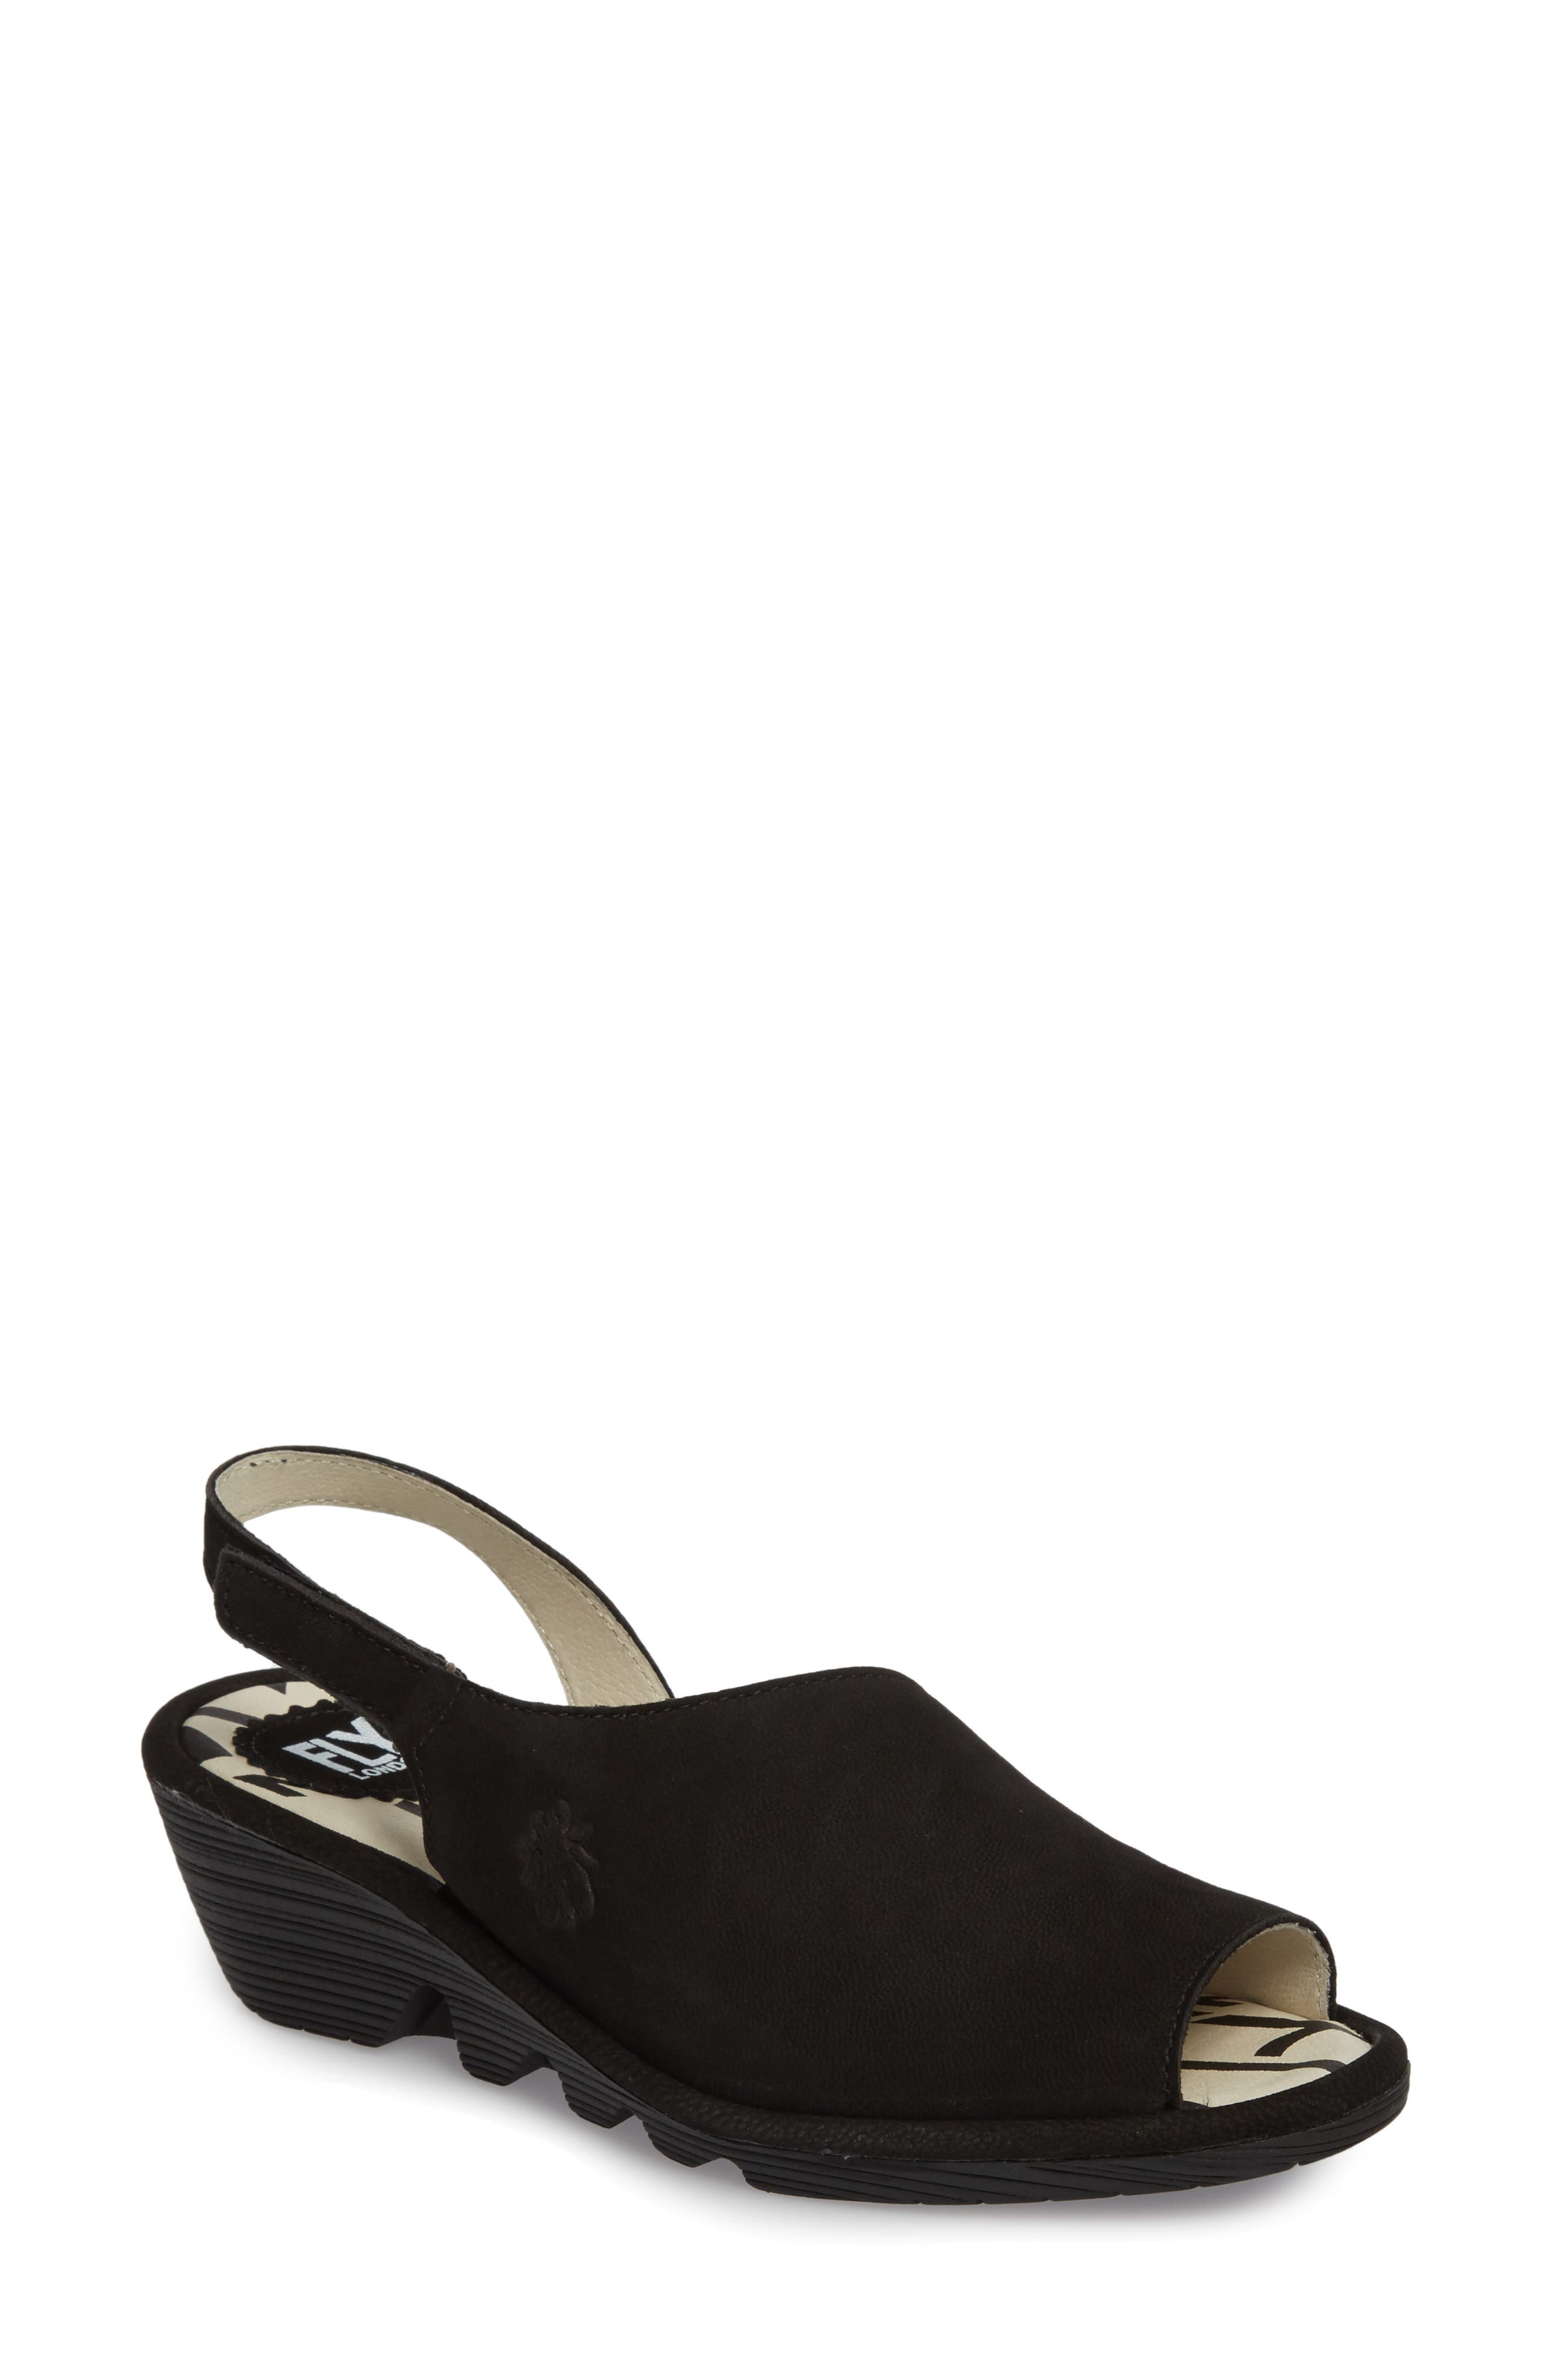 Fly London Palp Wedge Sandal - Black